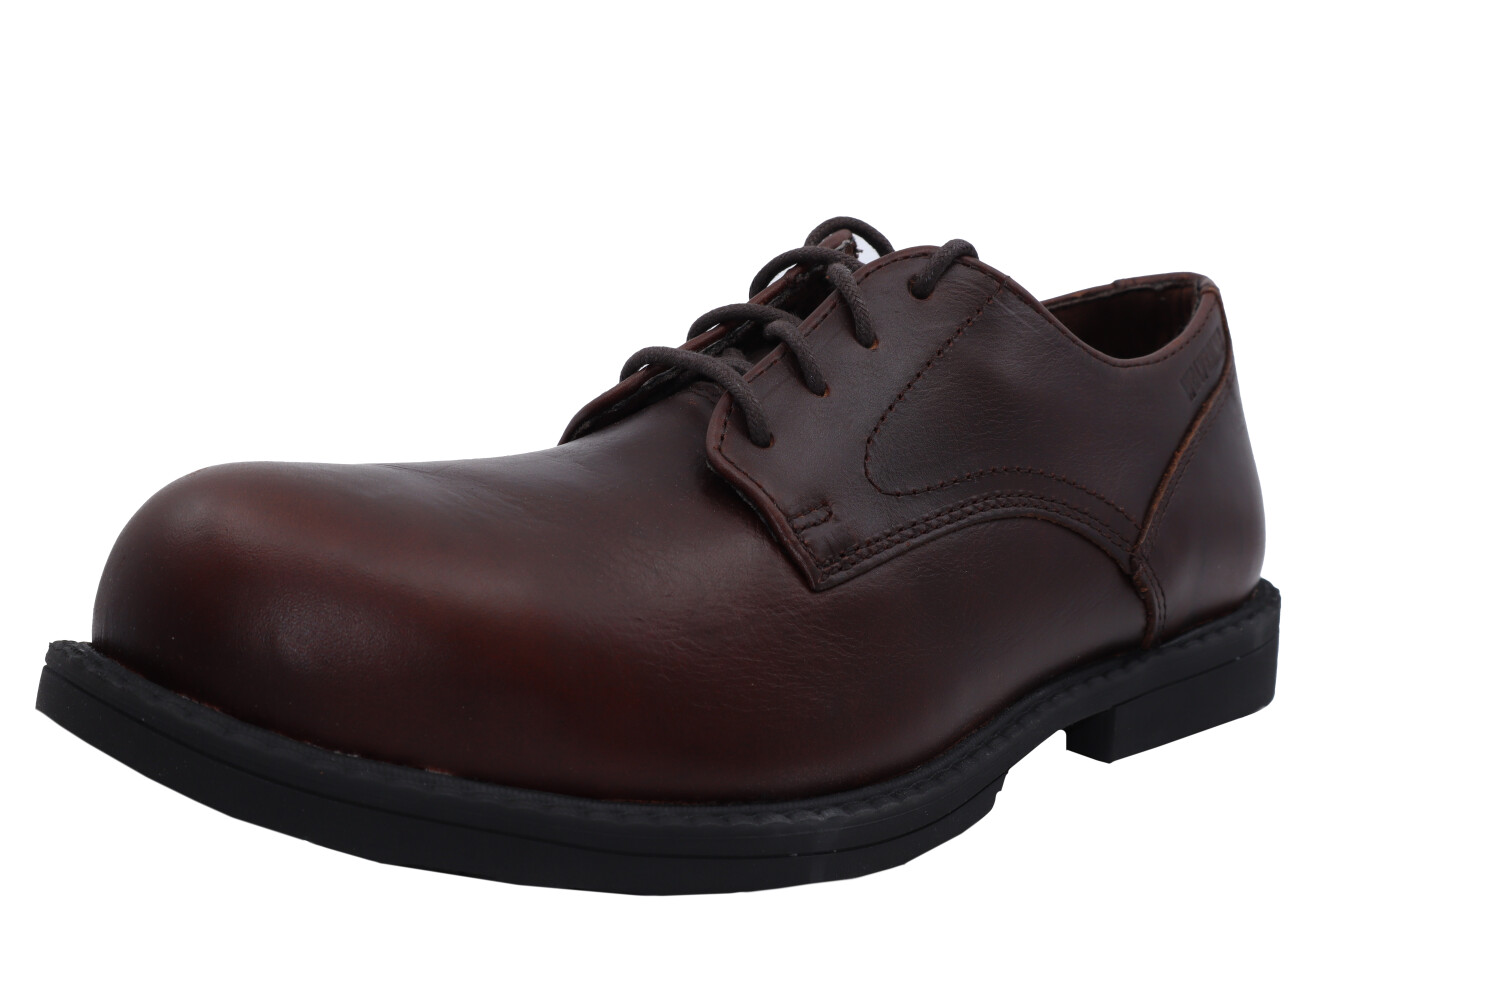 Wolverine Men's Bedford Oxfords S Brown Leather Oxford - 10.5W